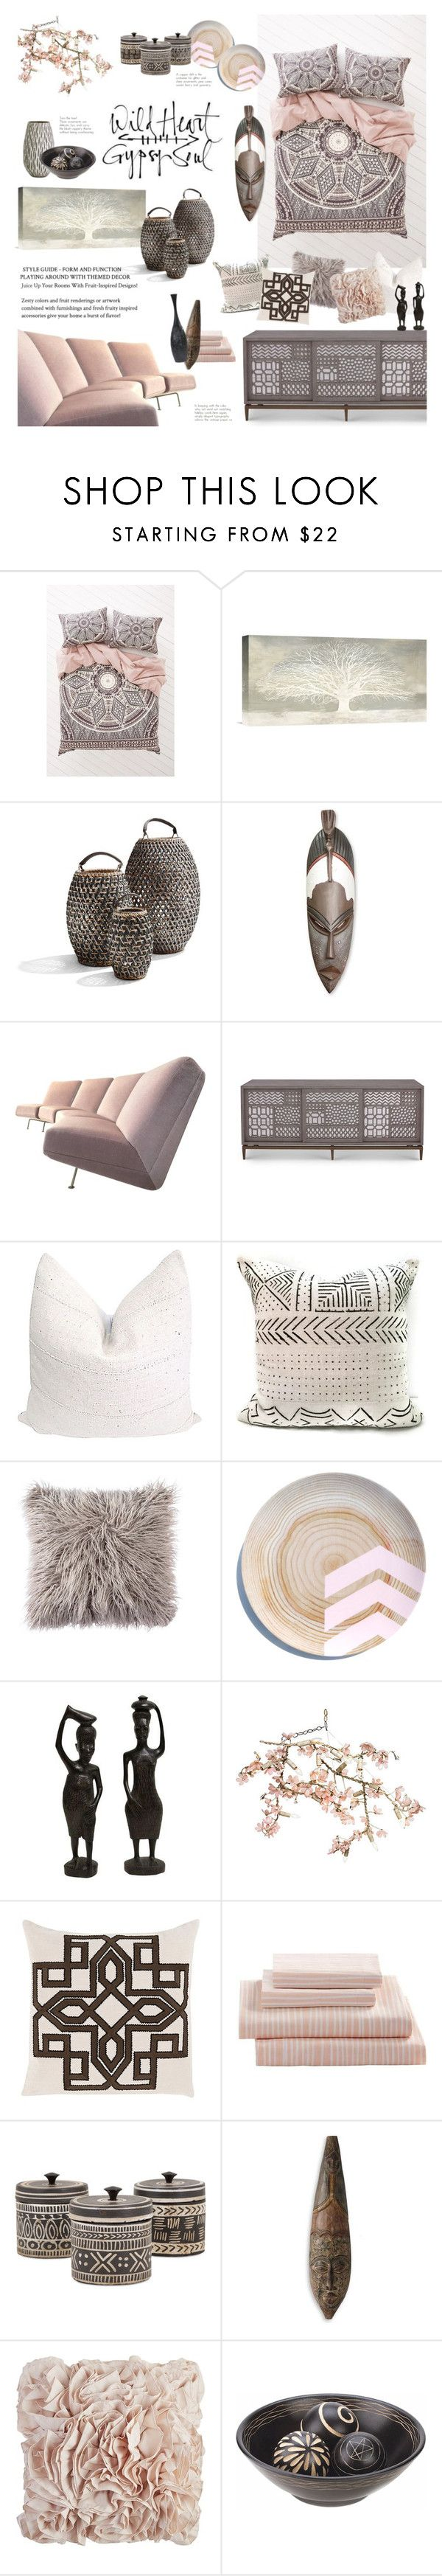 """""""Feminine Tribal Decor"""" by happilyjynxed ❤ liked on Polyvore featuring interior, interiors, interior design, home, home decor, interior decorating, Magical Thinking, NOVICA, Artifort and Canopy Designs"""